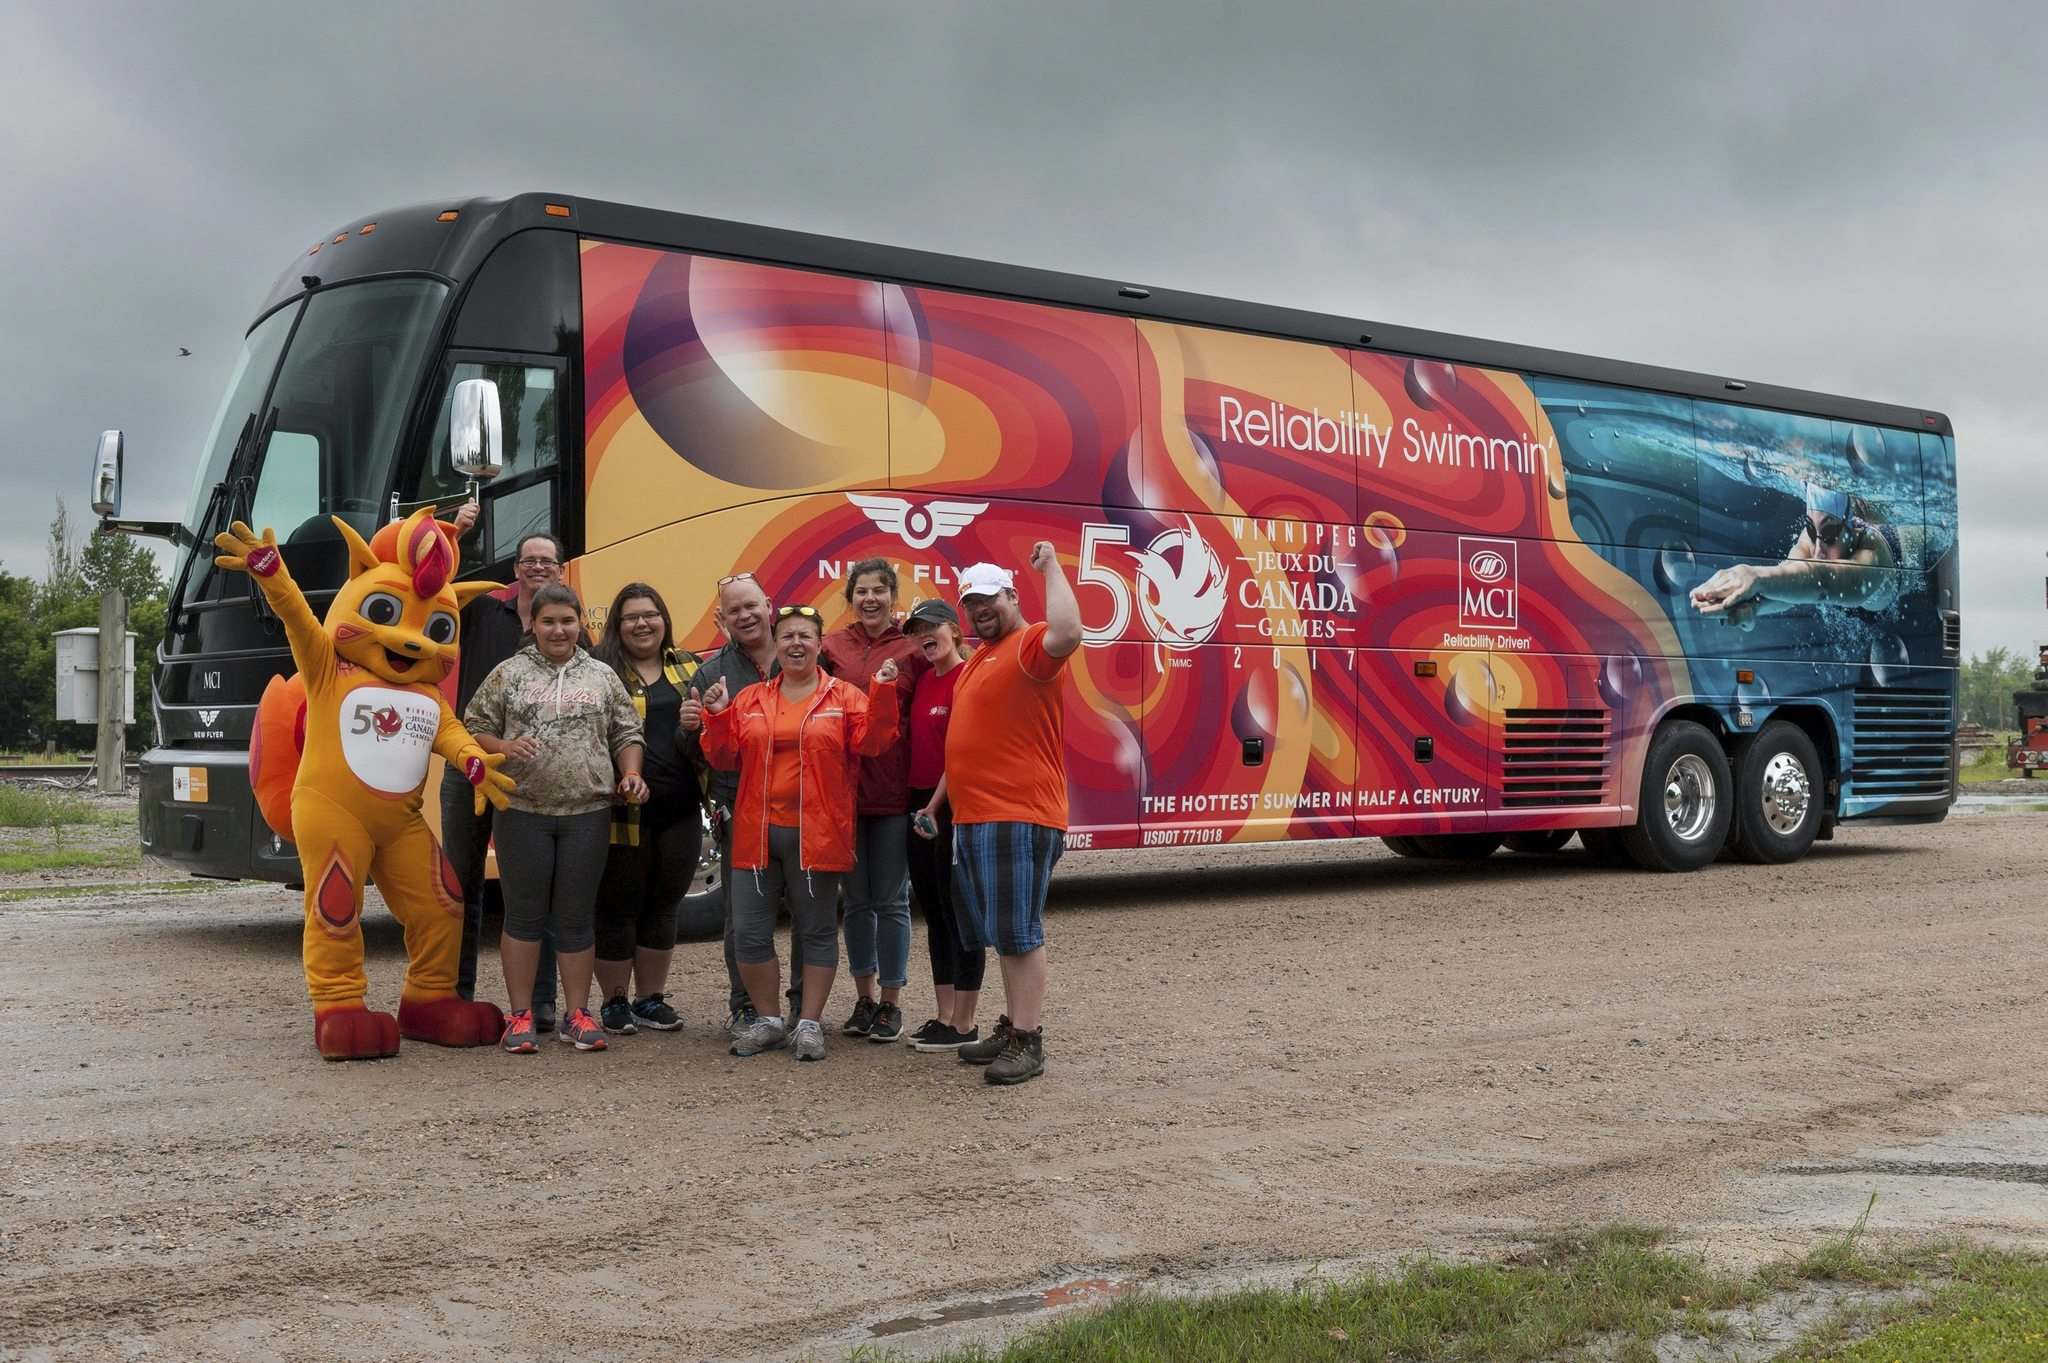 New Flyer Canada & MCI</p><p>Canada Summer Games mascot Niibin and volunteers stand in front of the coach transporting the official torch bearer team during the final leg of the torch relay. The Games begin Friday.</p></p>